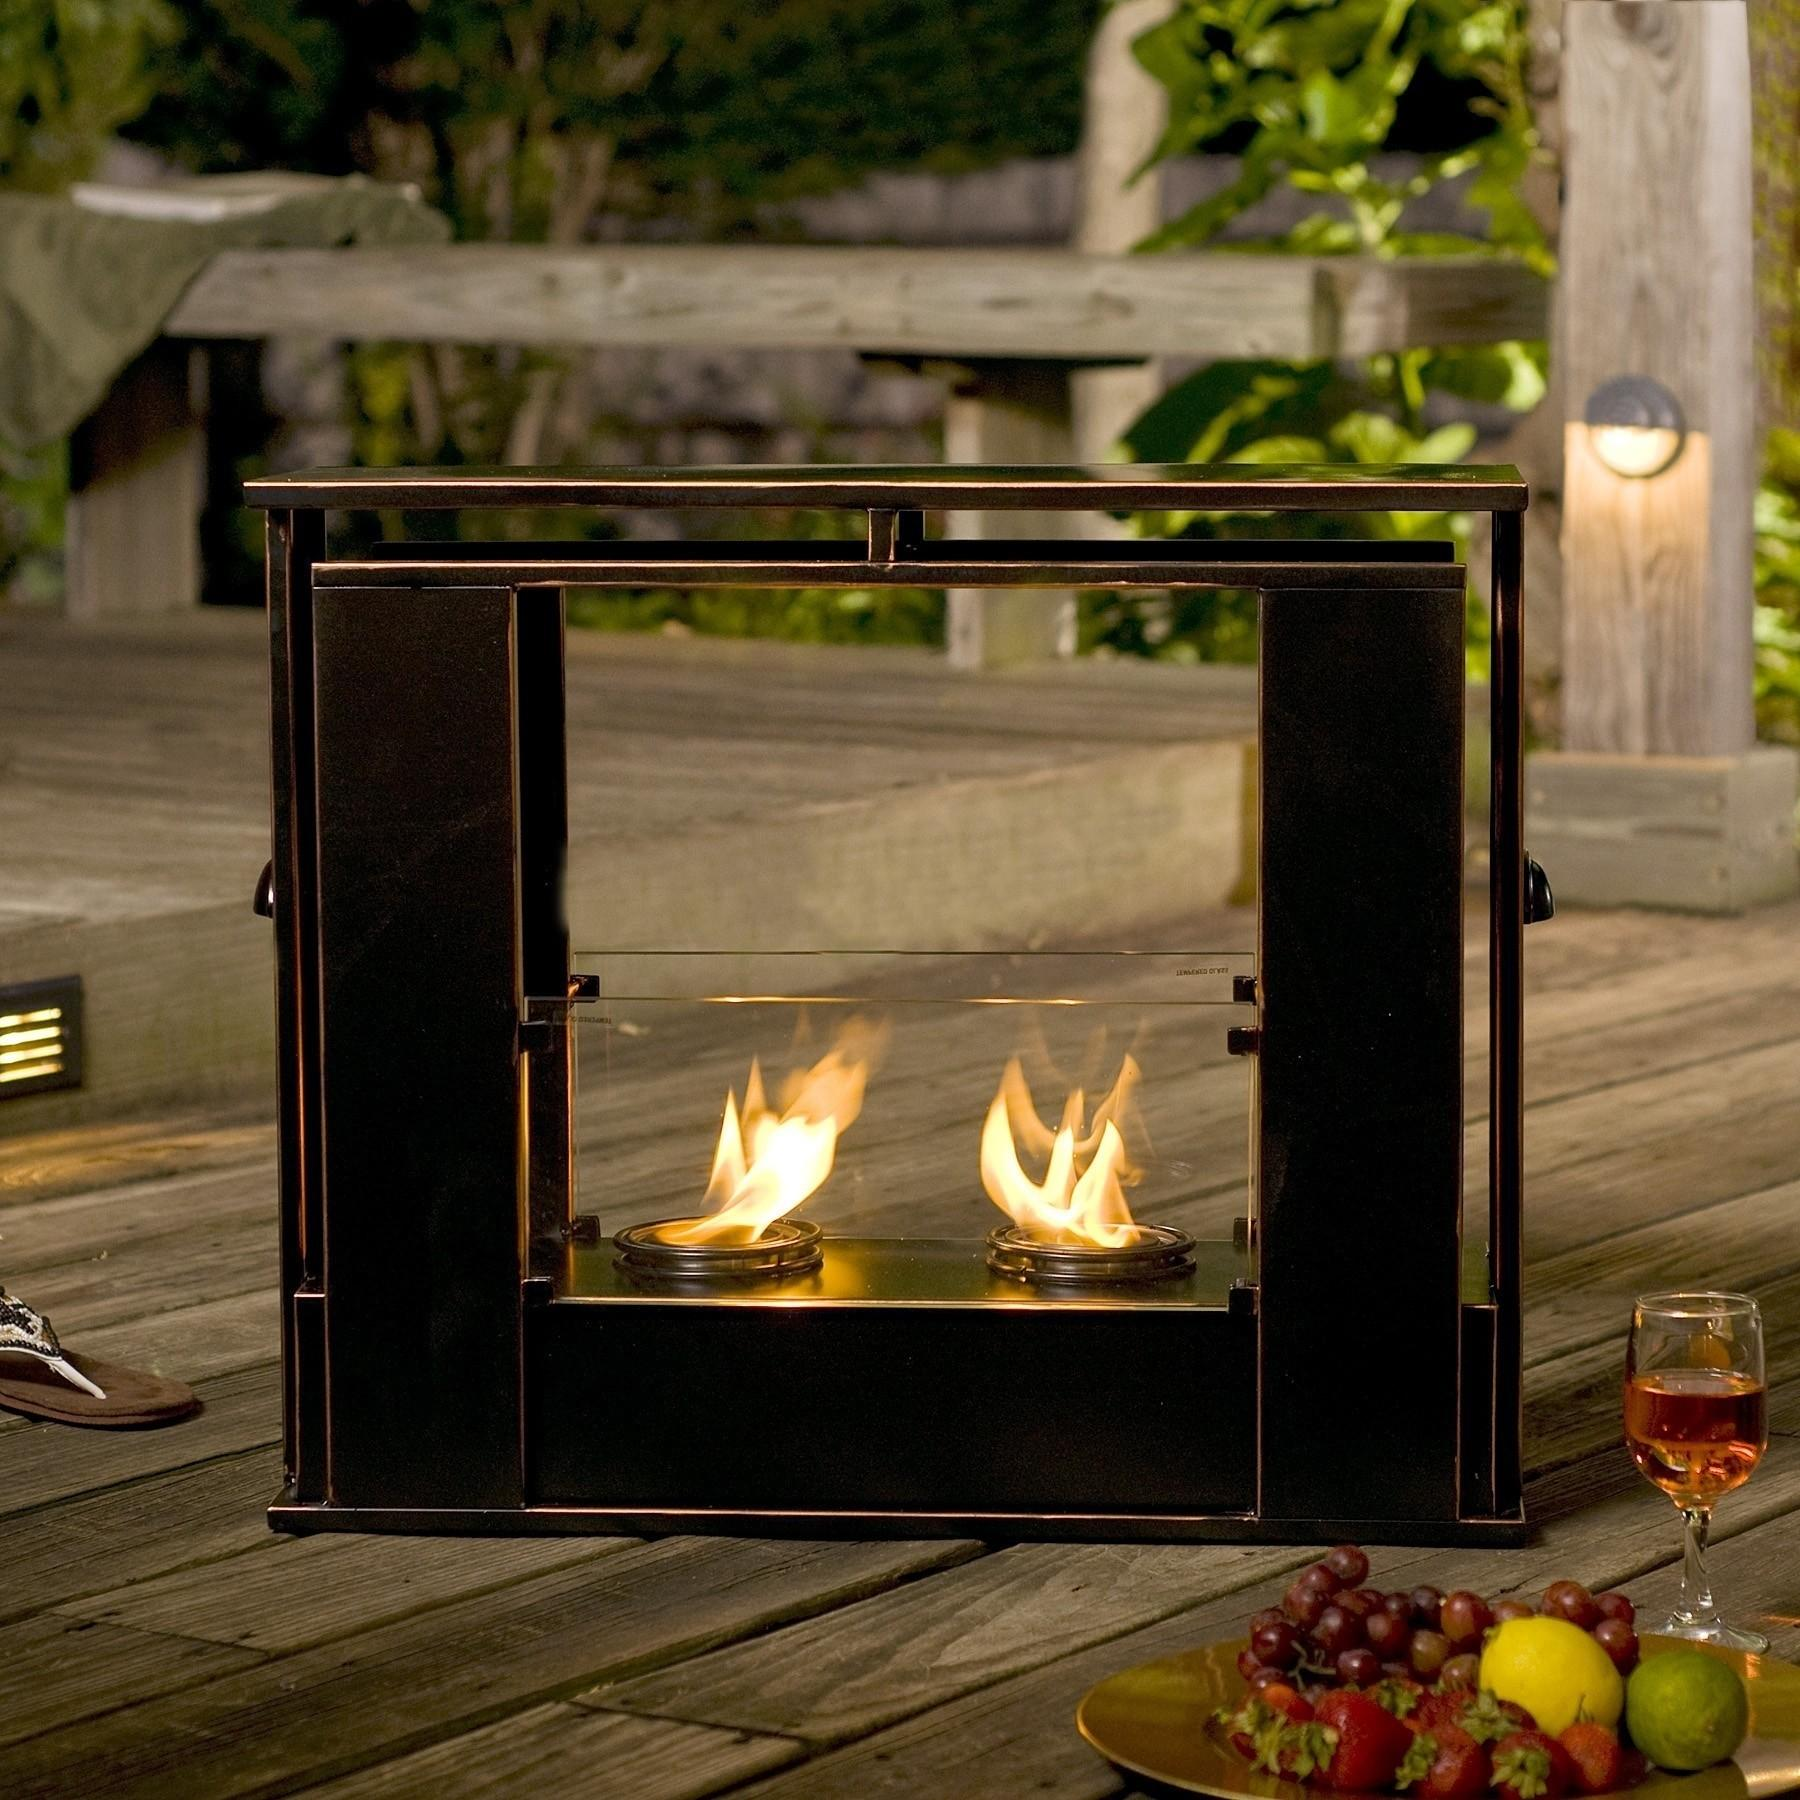 Emejing Portable Fireplace Indoor Ideas Decoration